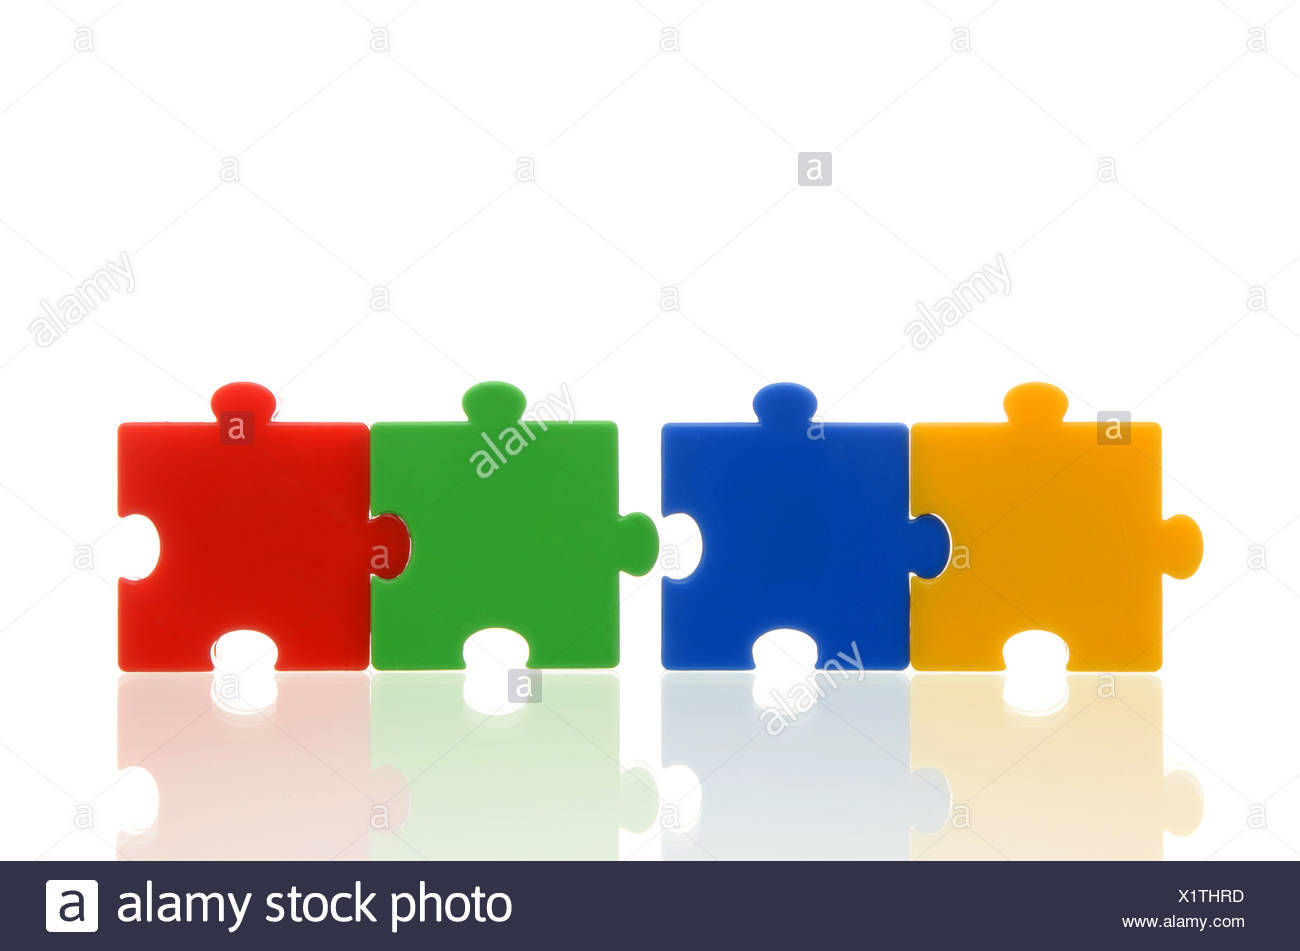 Puzzle pieces stock photos puzzle pieces stock images alamy different coloured puzzle pieces two pairs of two connected puzzle pieces symbolic image for ccuart Gallery